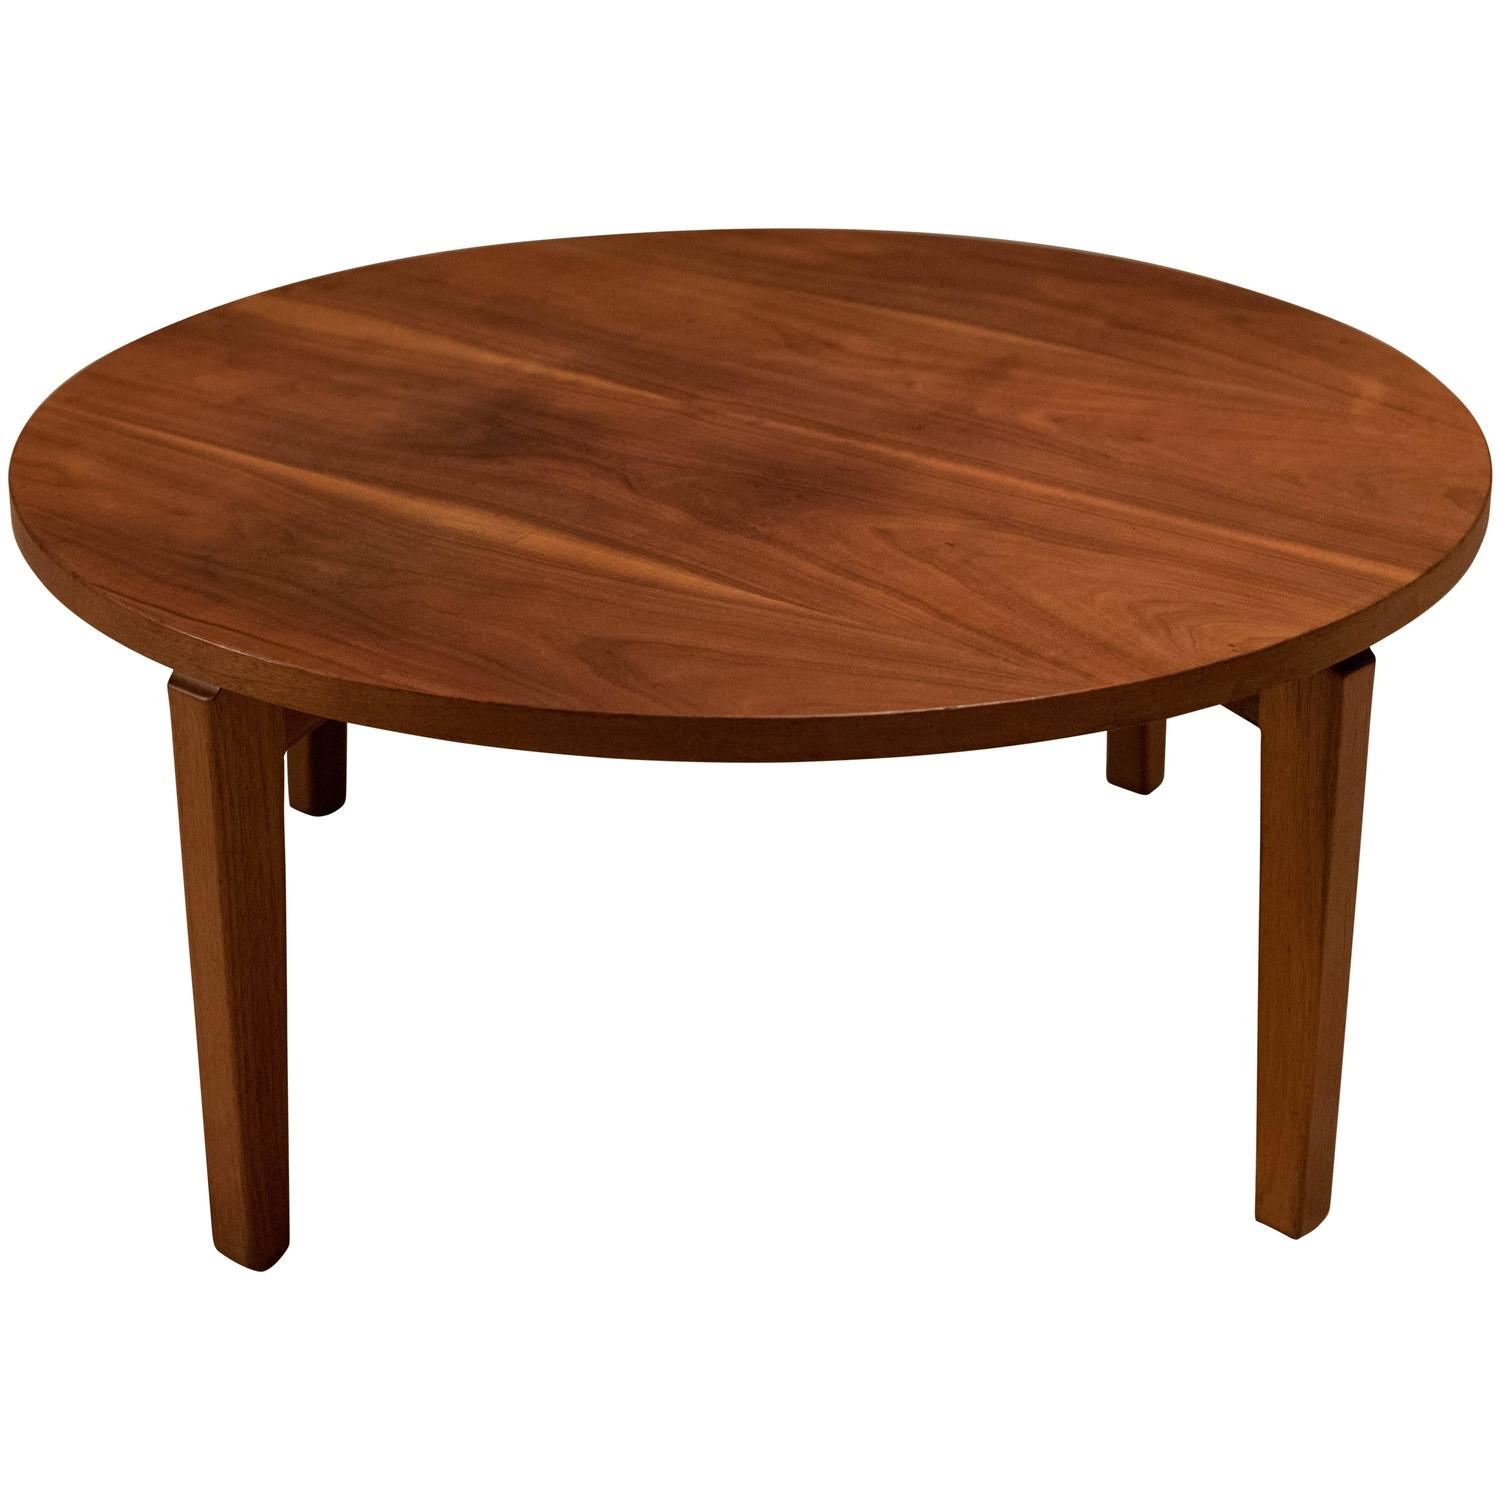 Mid century walnut round coffee table for sale at 1stdibs for Round coffee tables for sale